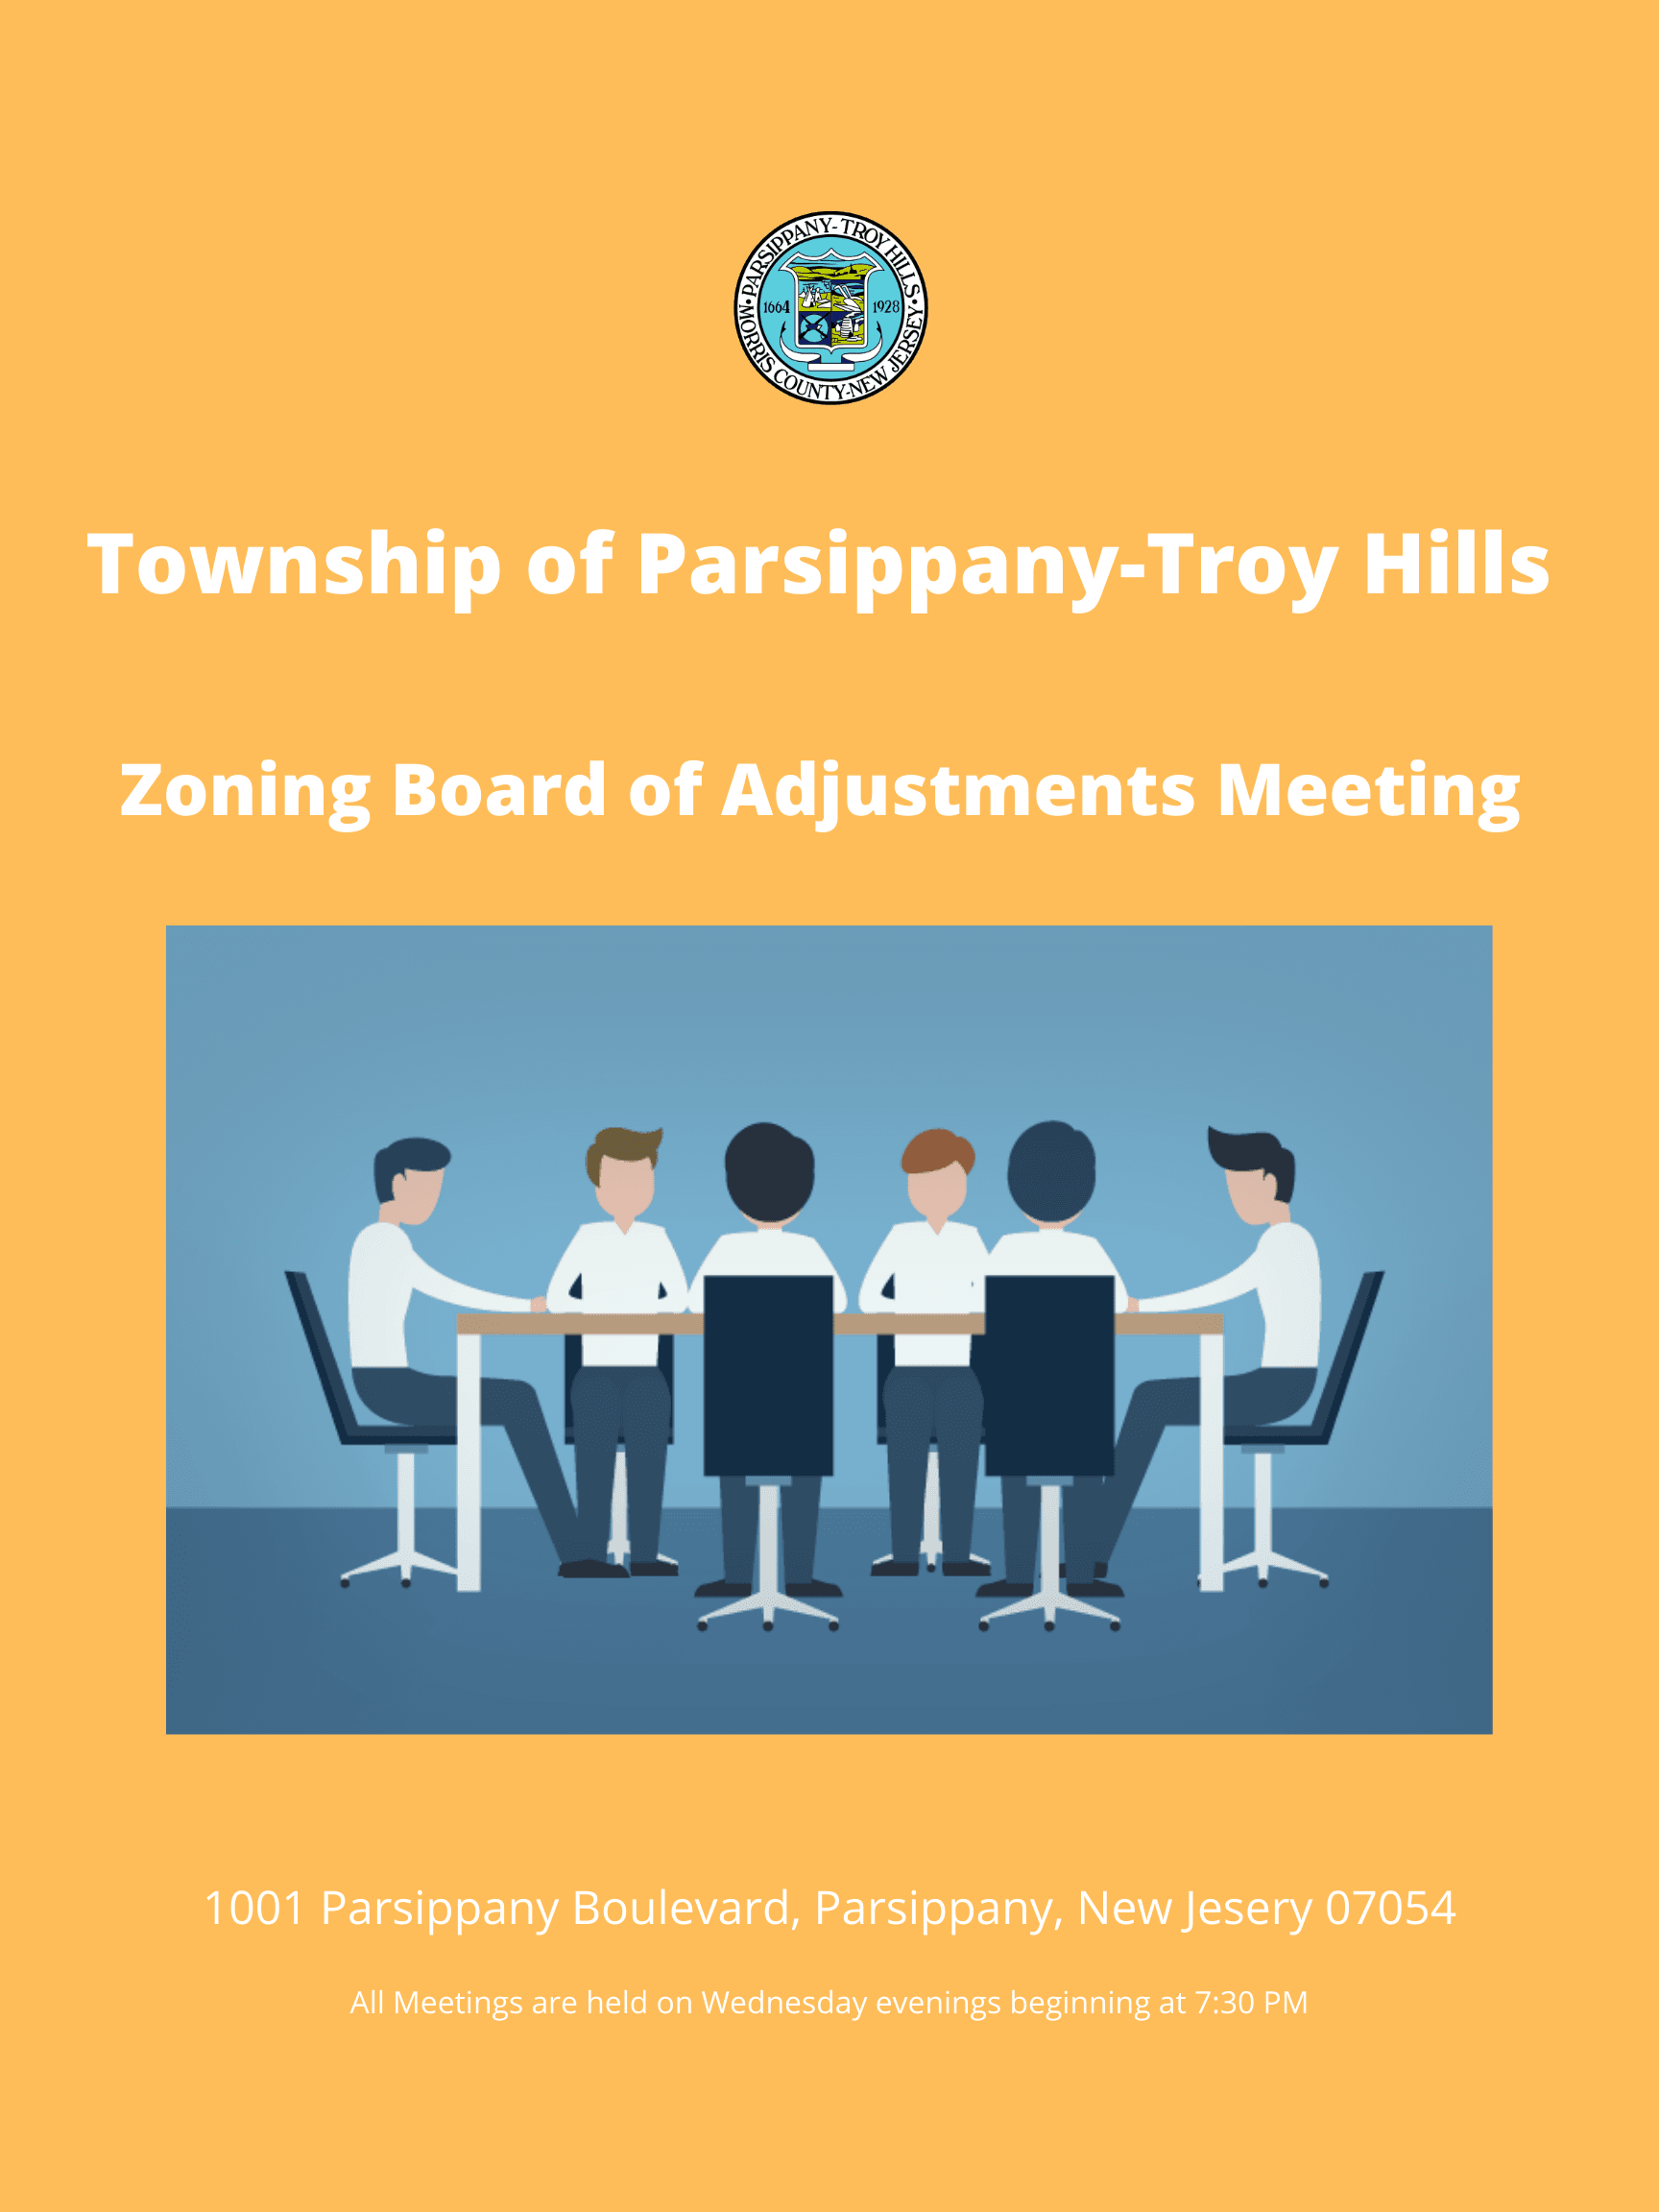 Township of Parsippany-Troy Hills Zoning Board of Adjustment Meeting